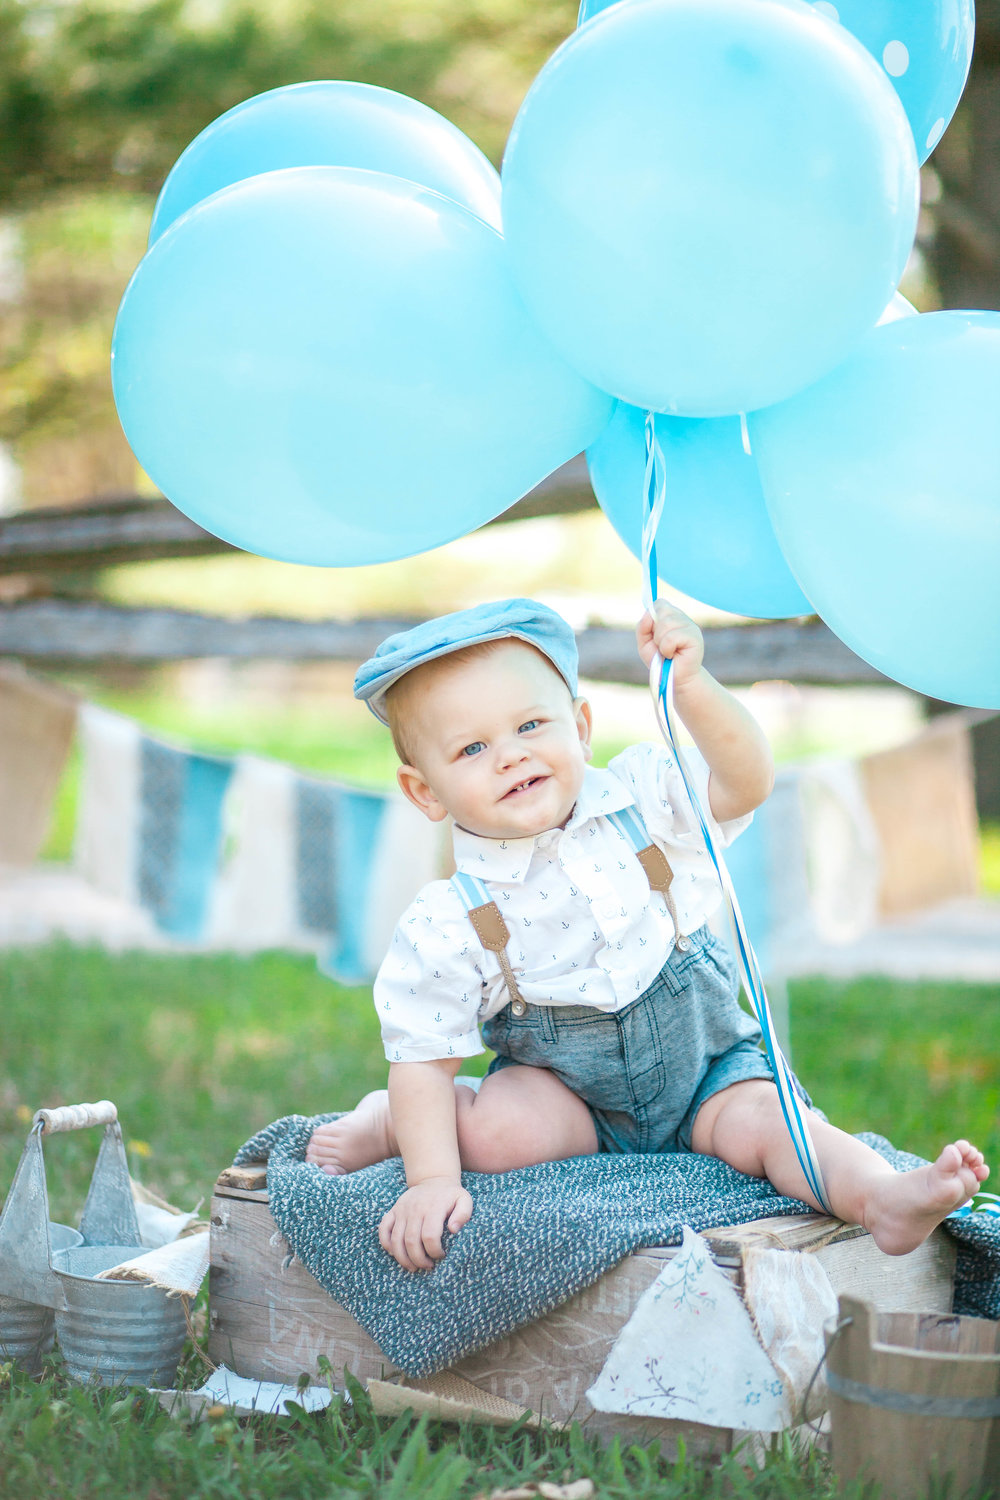 Amy D Photography- Cake Smash- Outdoor Cake Smash- Boys Cake Smash- Outdoor Boys Cake Smash- First Birthday Photos- Family Photography- Children Photography (60 of 67).jpg